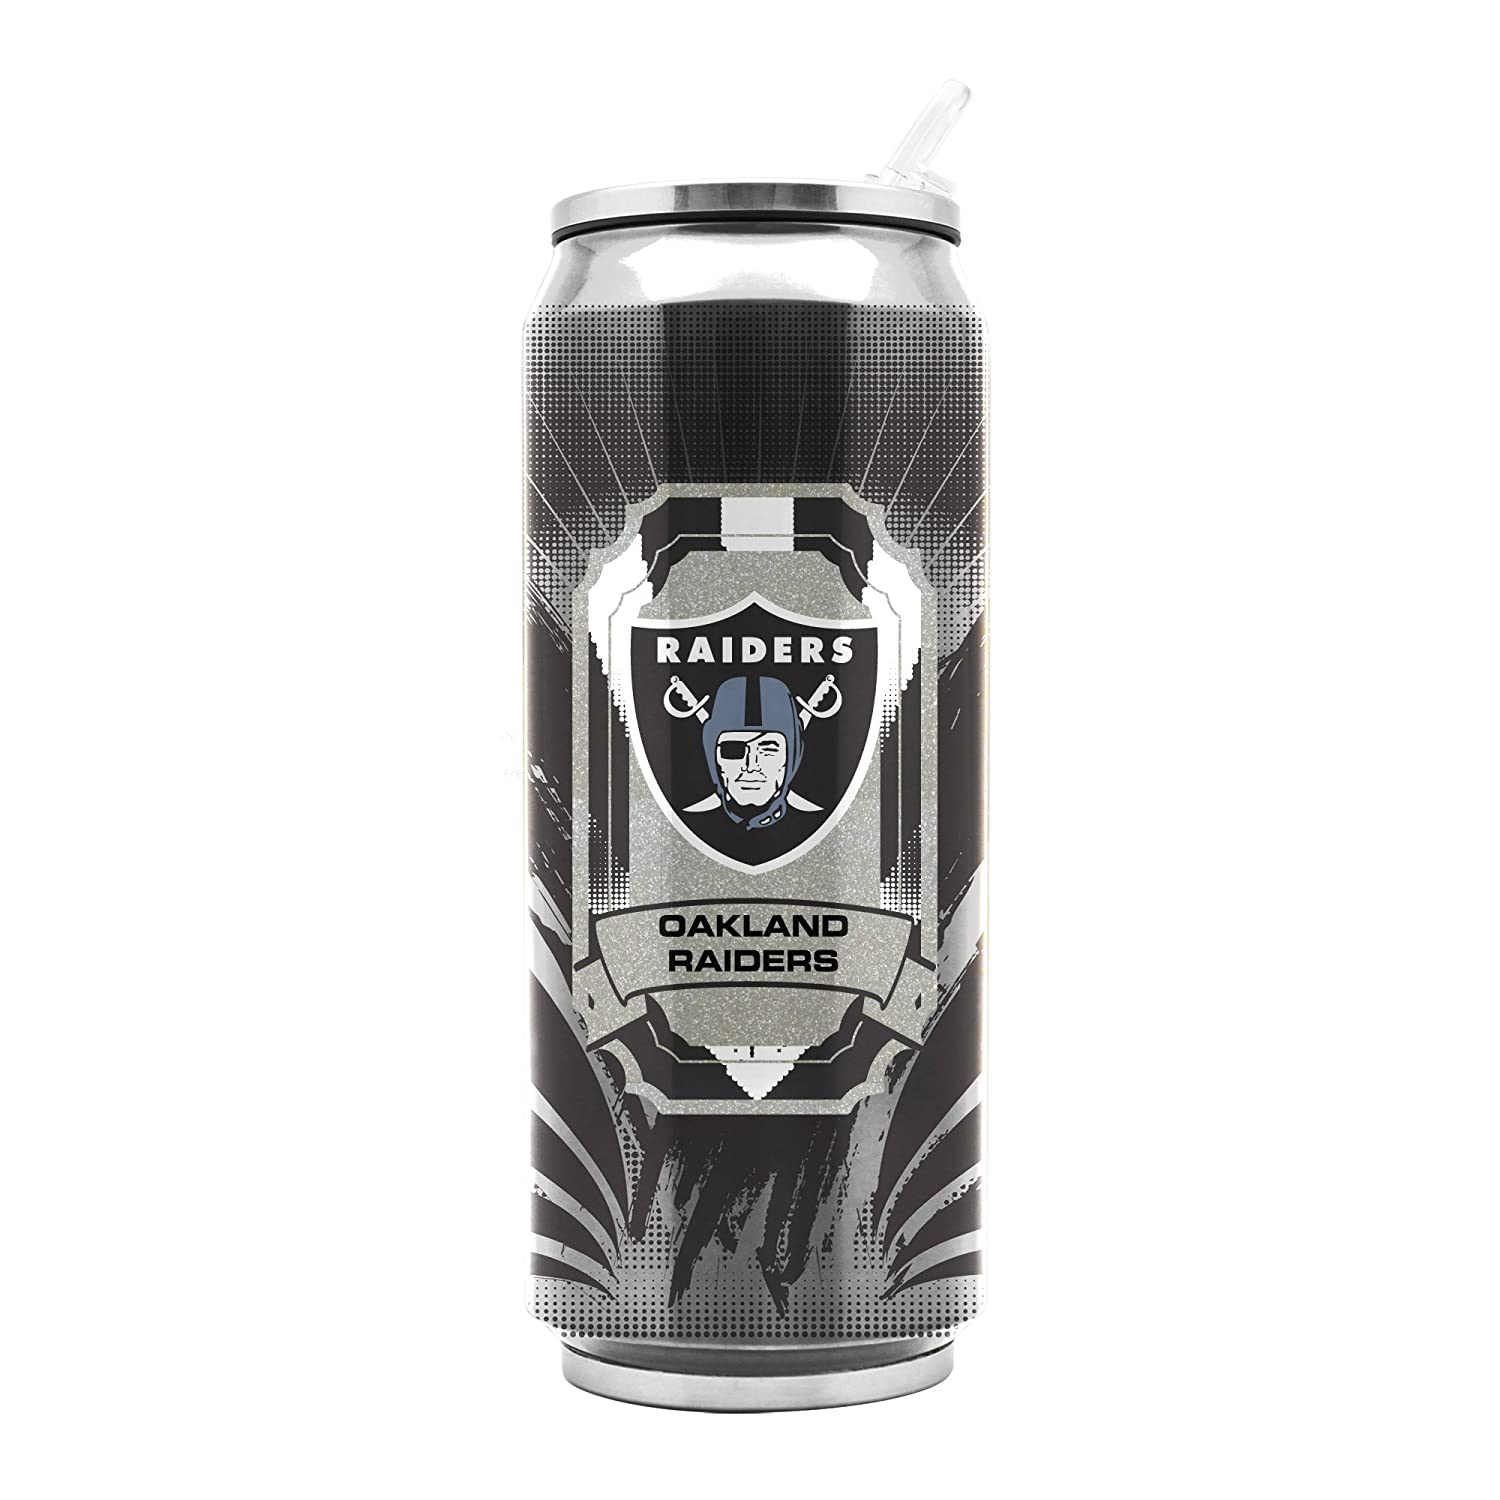 NFL Oakland Raiders 16oz Double Wall Stainless Steel Thermocan